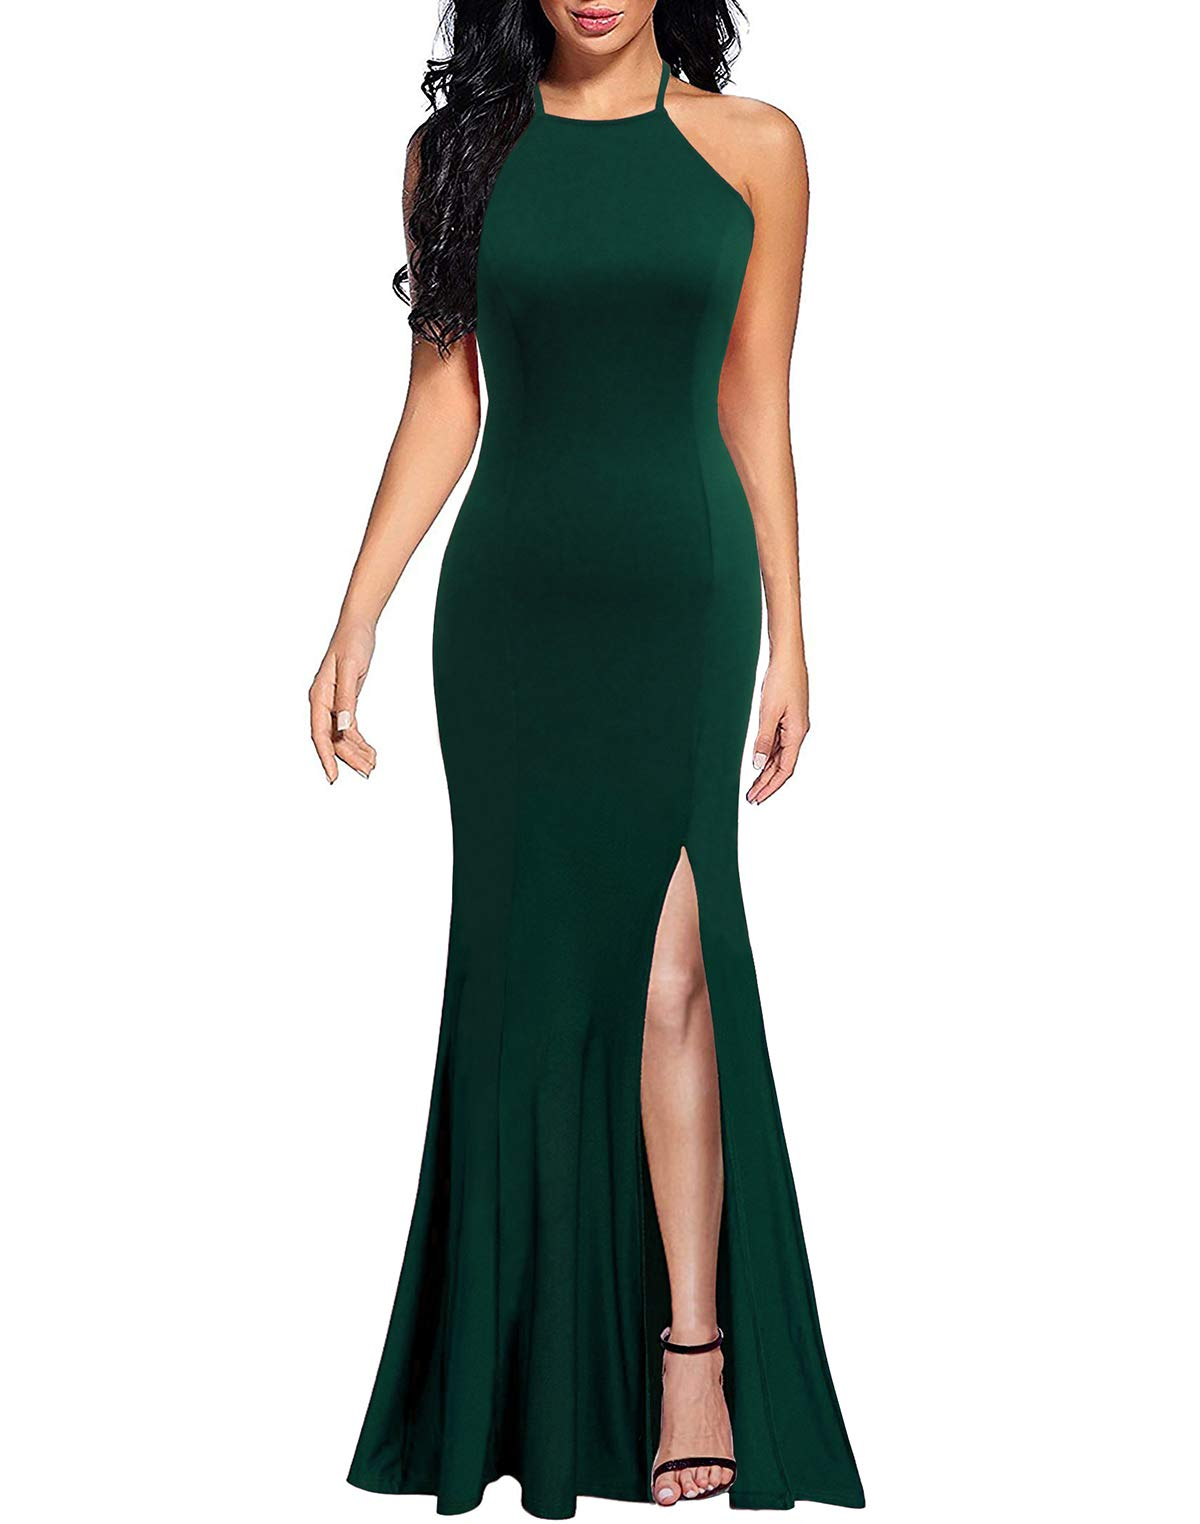 Wedding Guest Dresses - Women's Classic Vintage Tie Neck Formal Cocktail Dress With Pocket